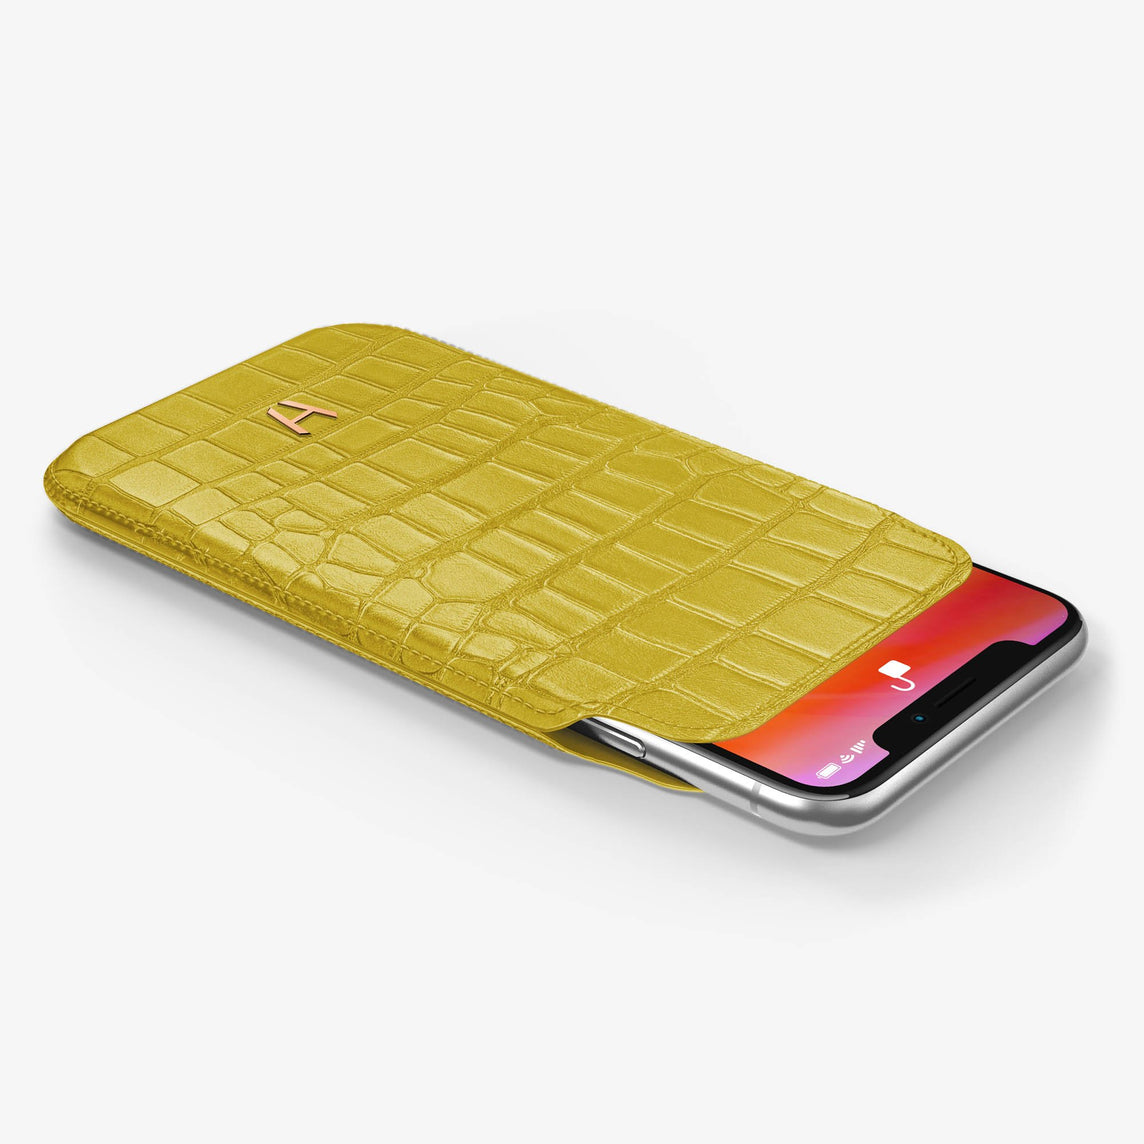 Alligator [iPhone Sleeve Case] [model:iphone-xsmax-case] [colour:yellow] [finishing:rose-gold]